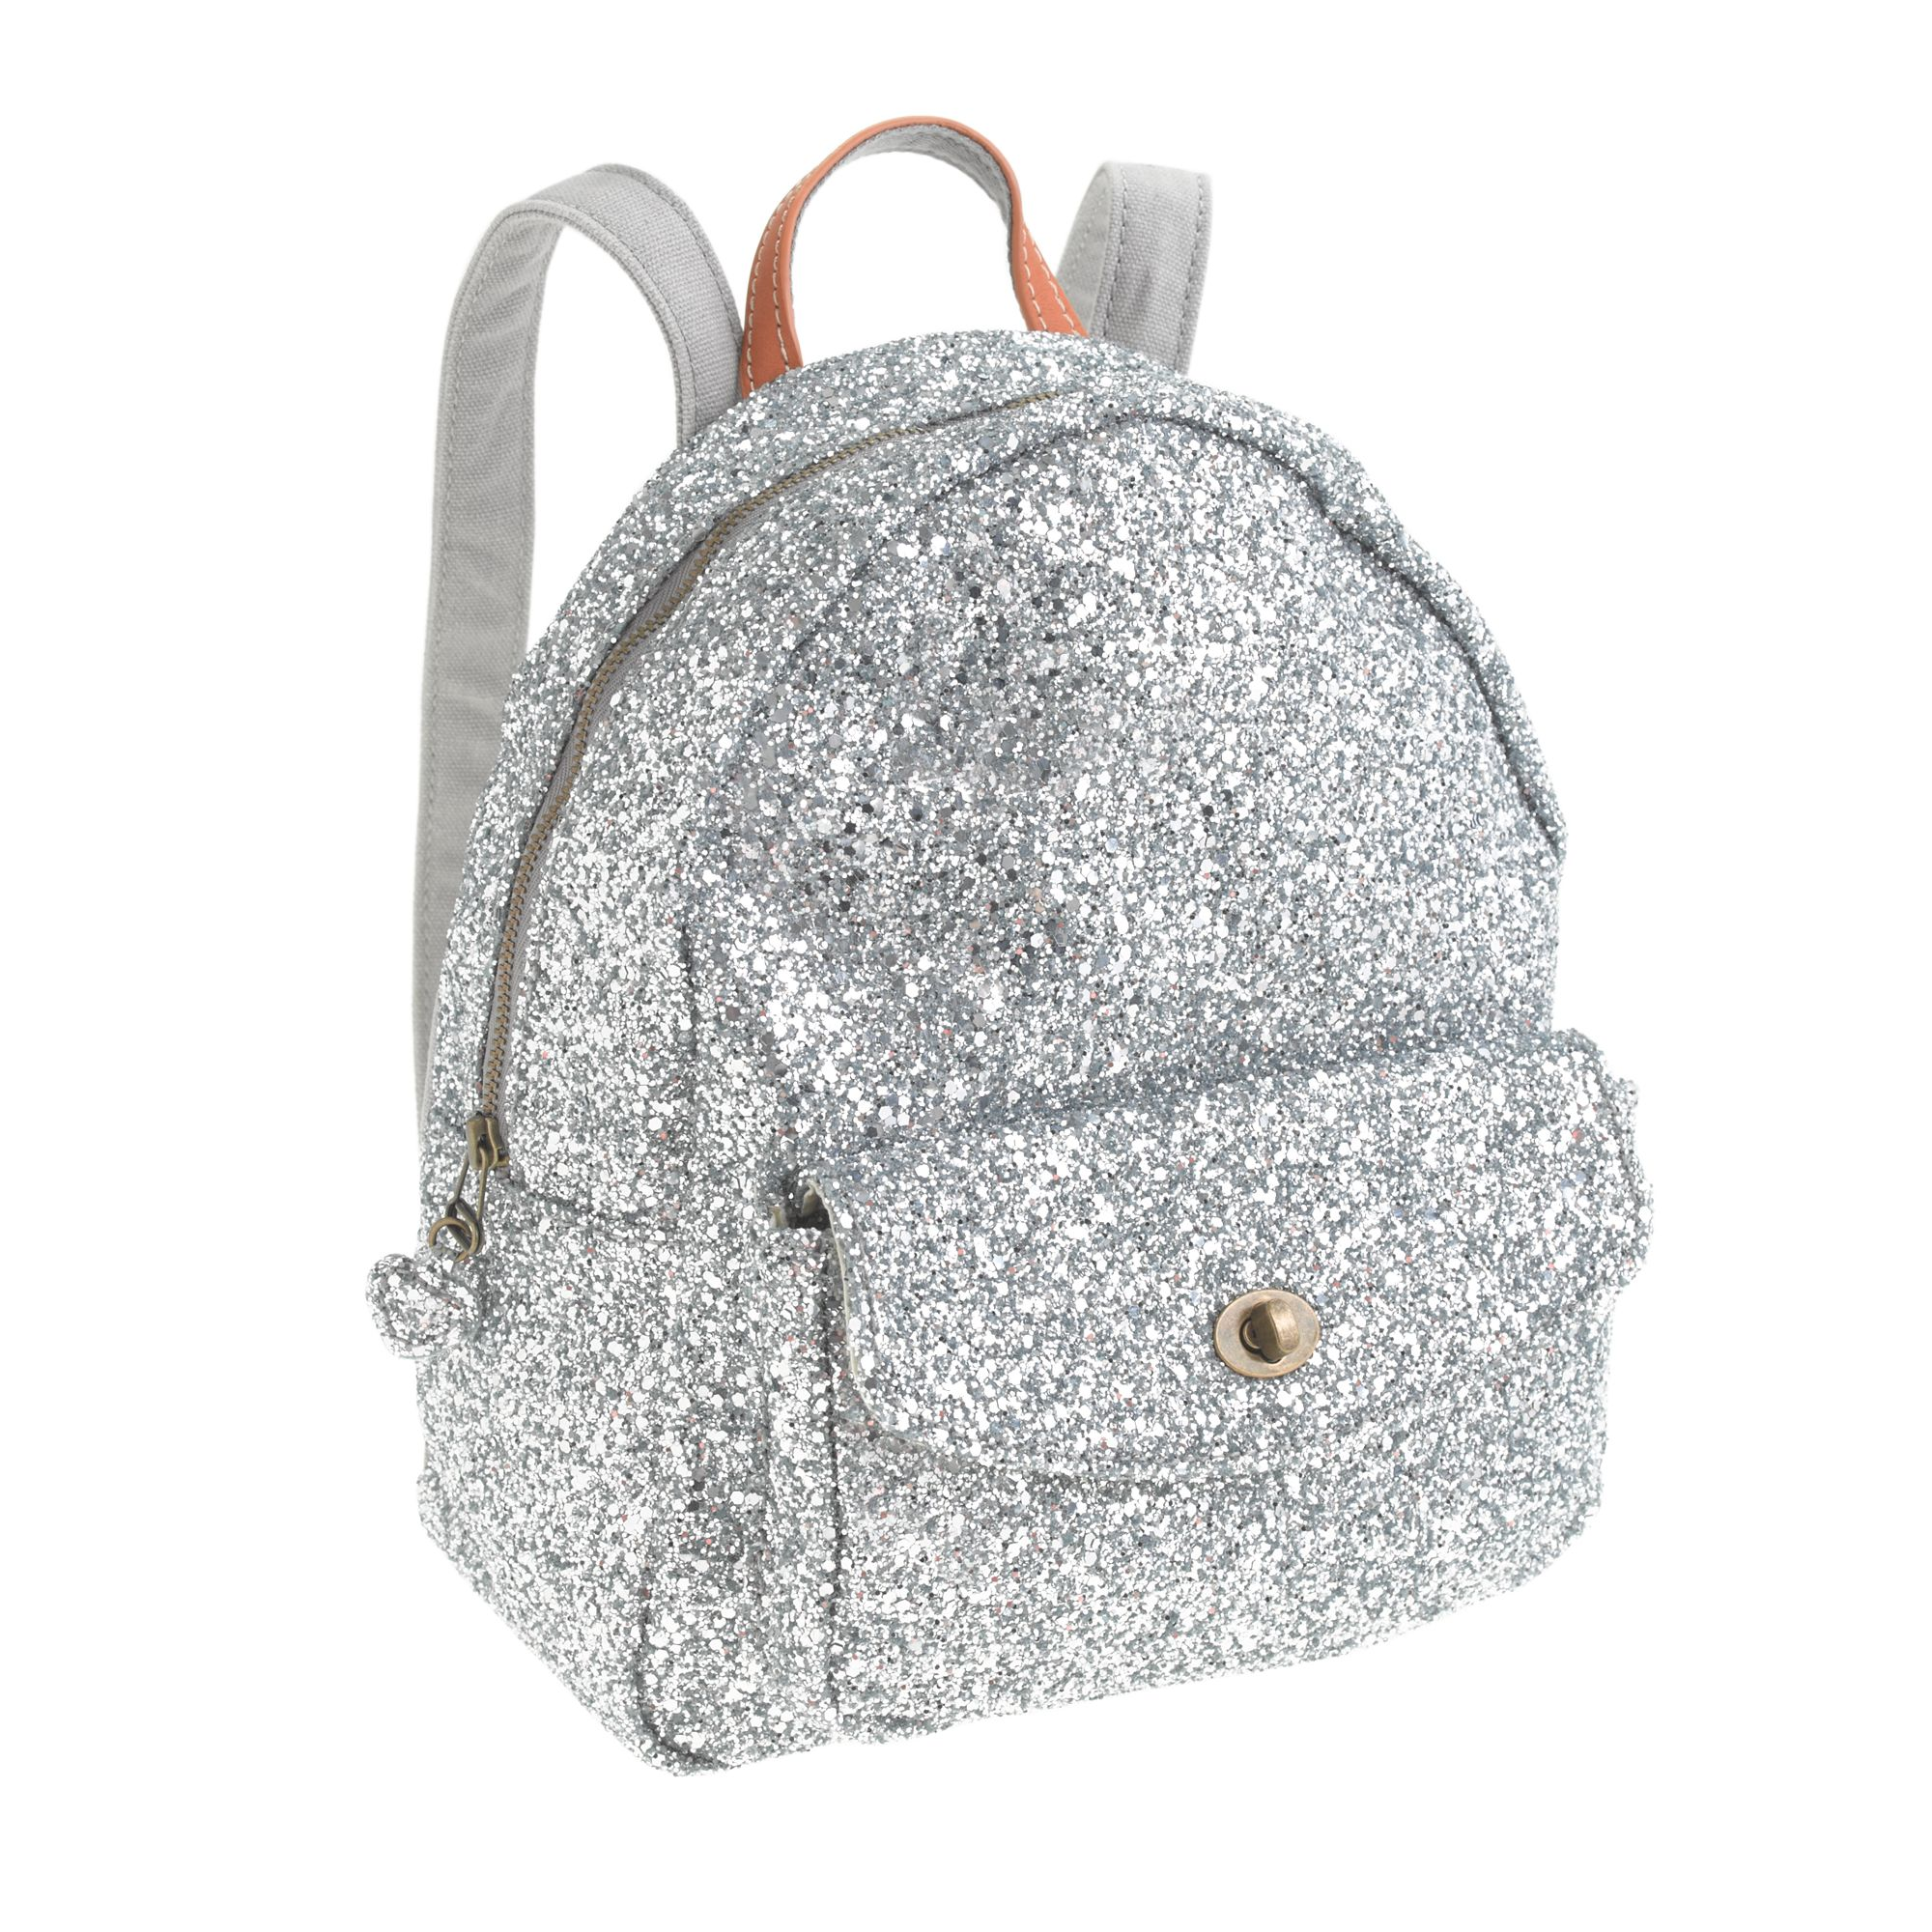 J.crew Girls Mini Glitter Backpack in Gray | Lyst